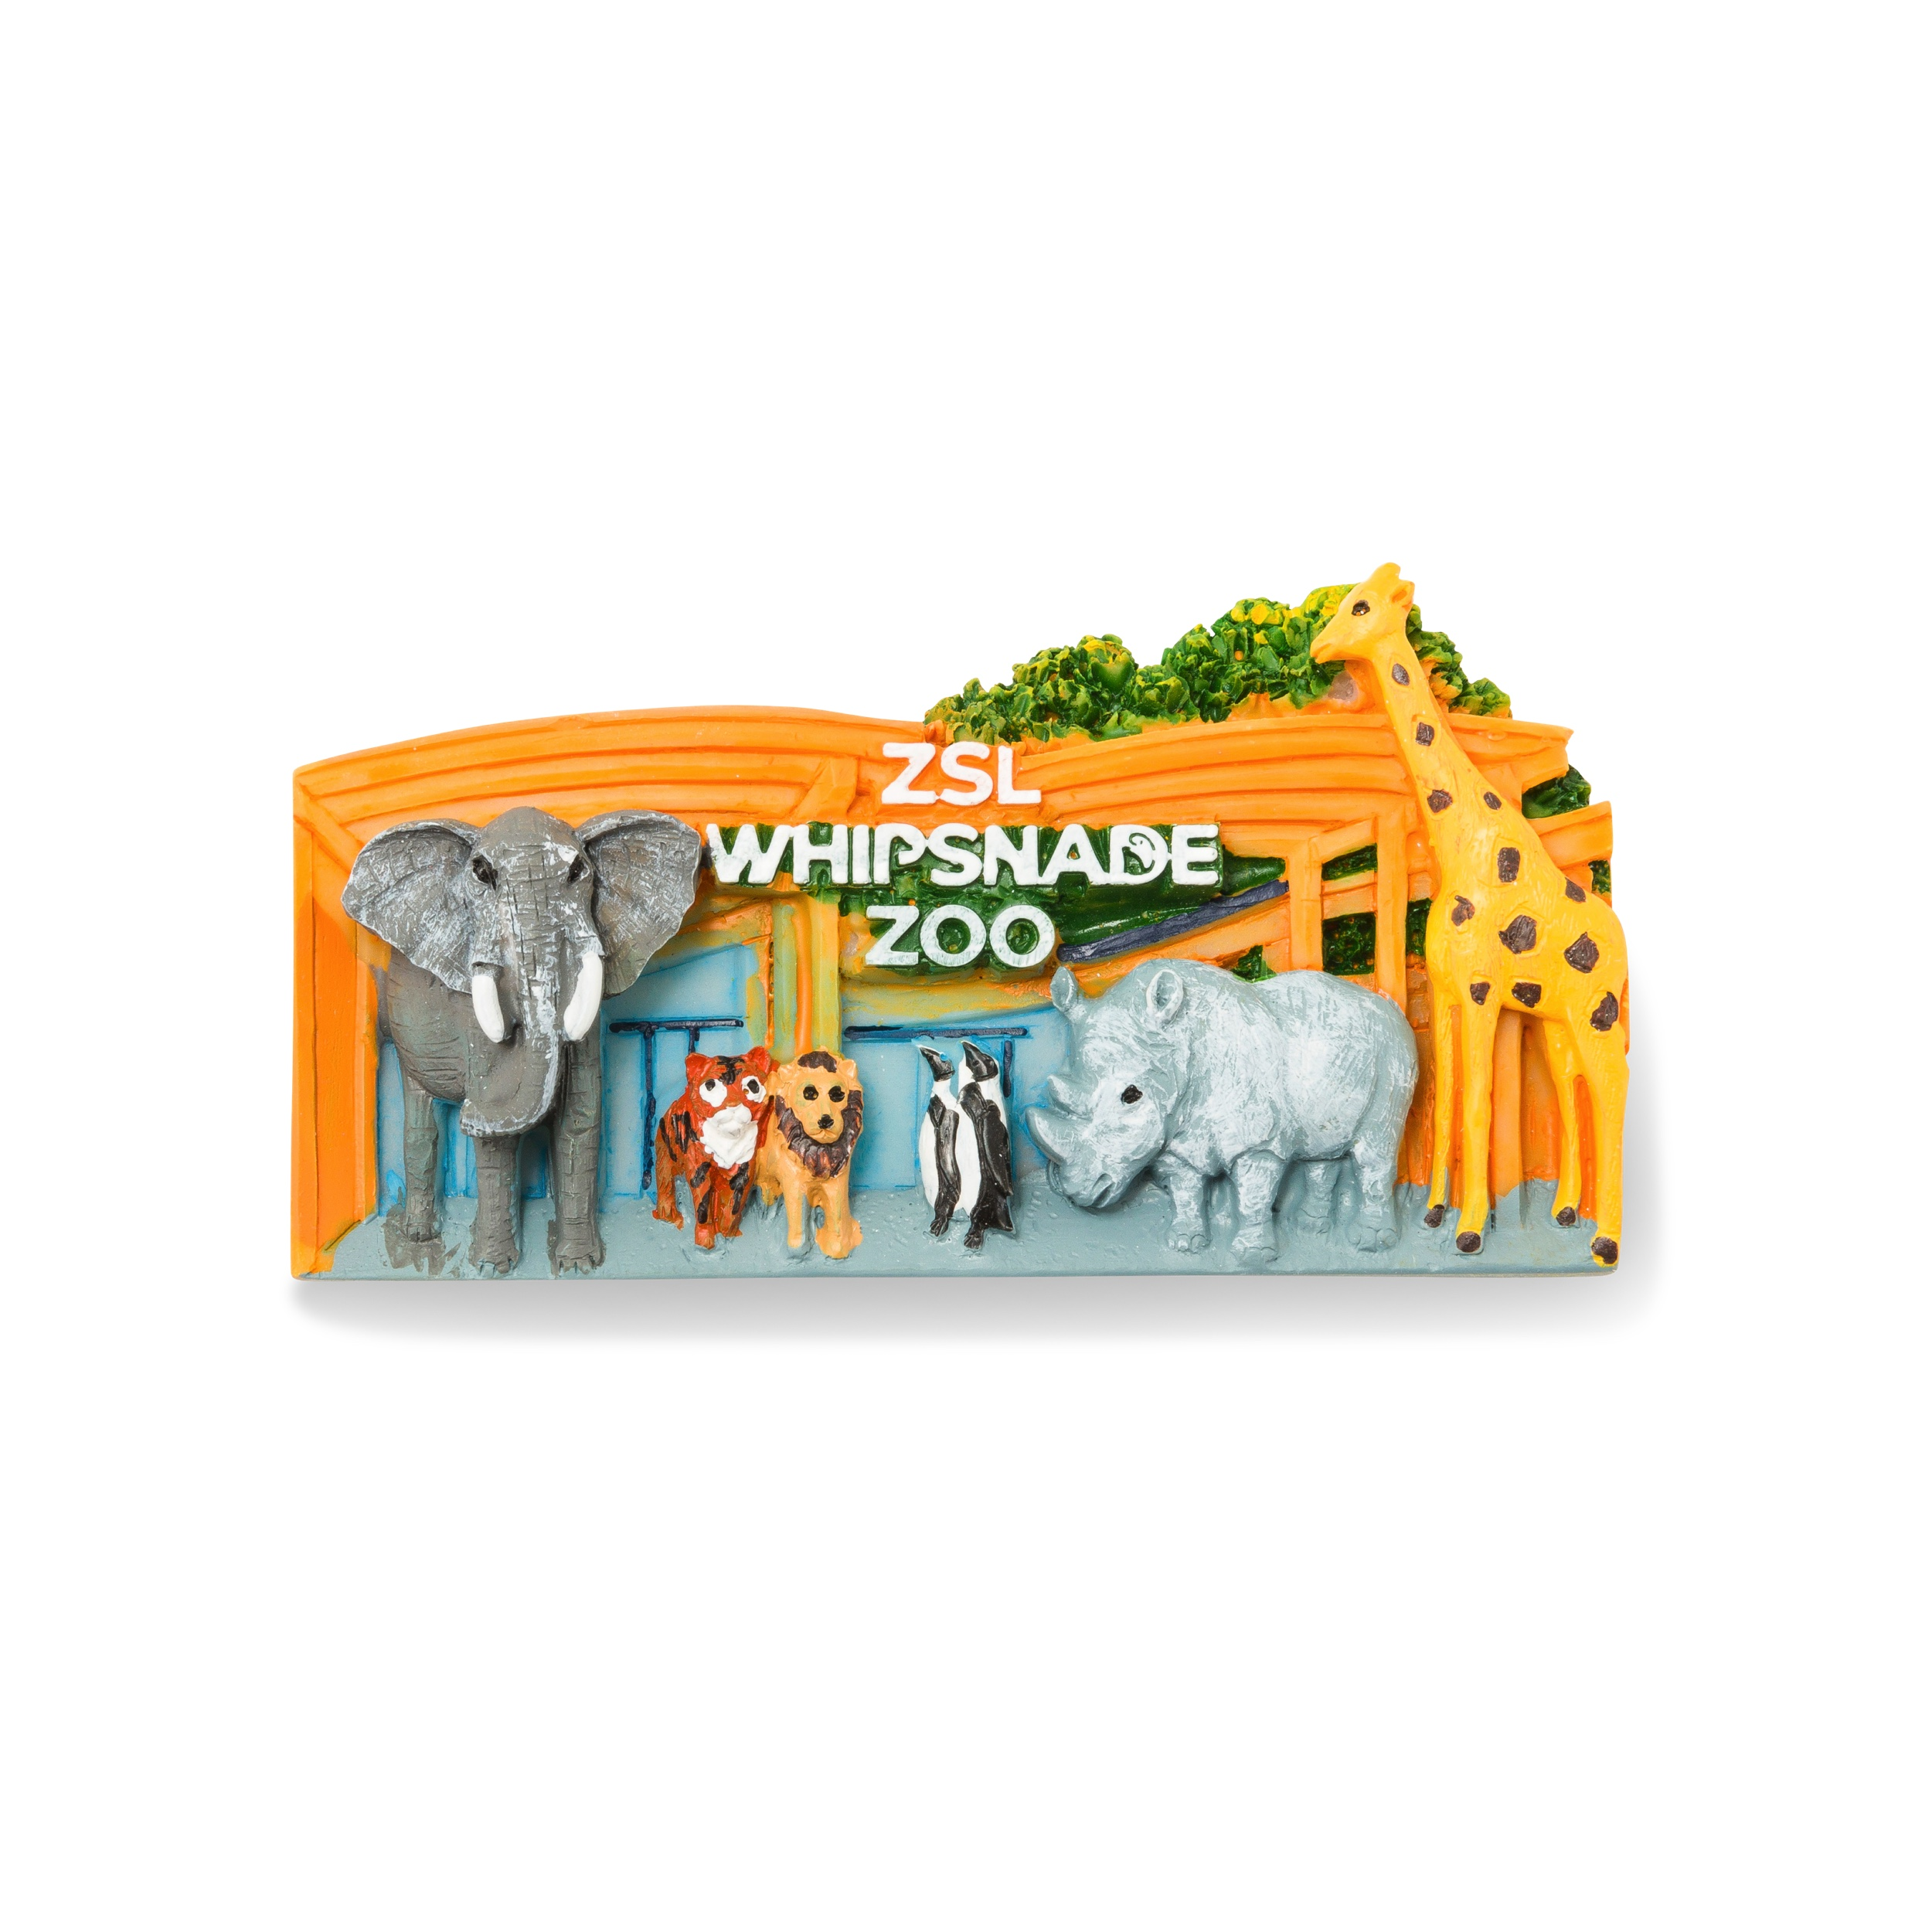 ZSL Whipsnade Zoo Gates Magnet